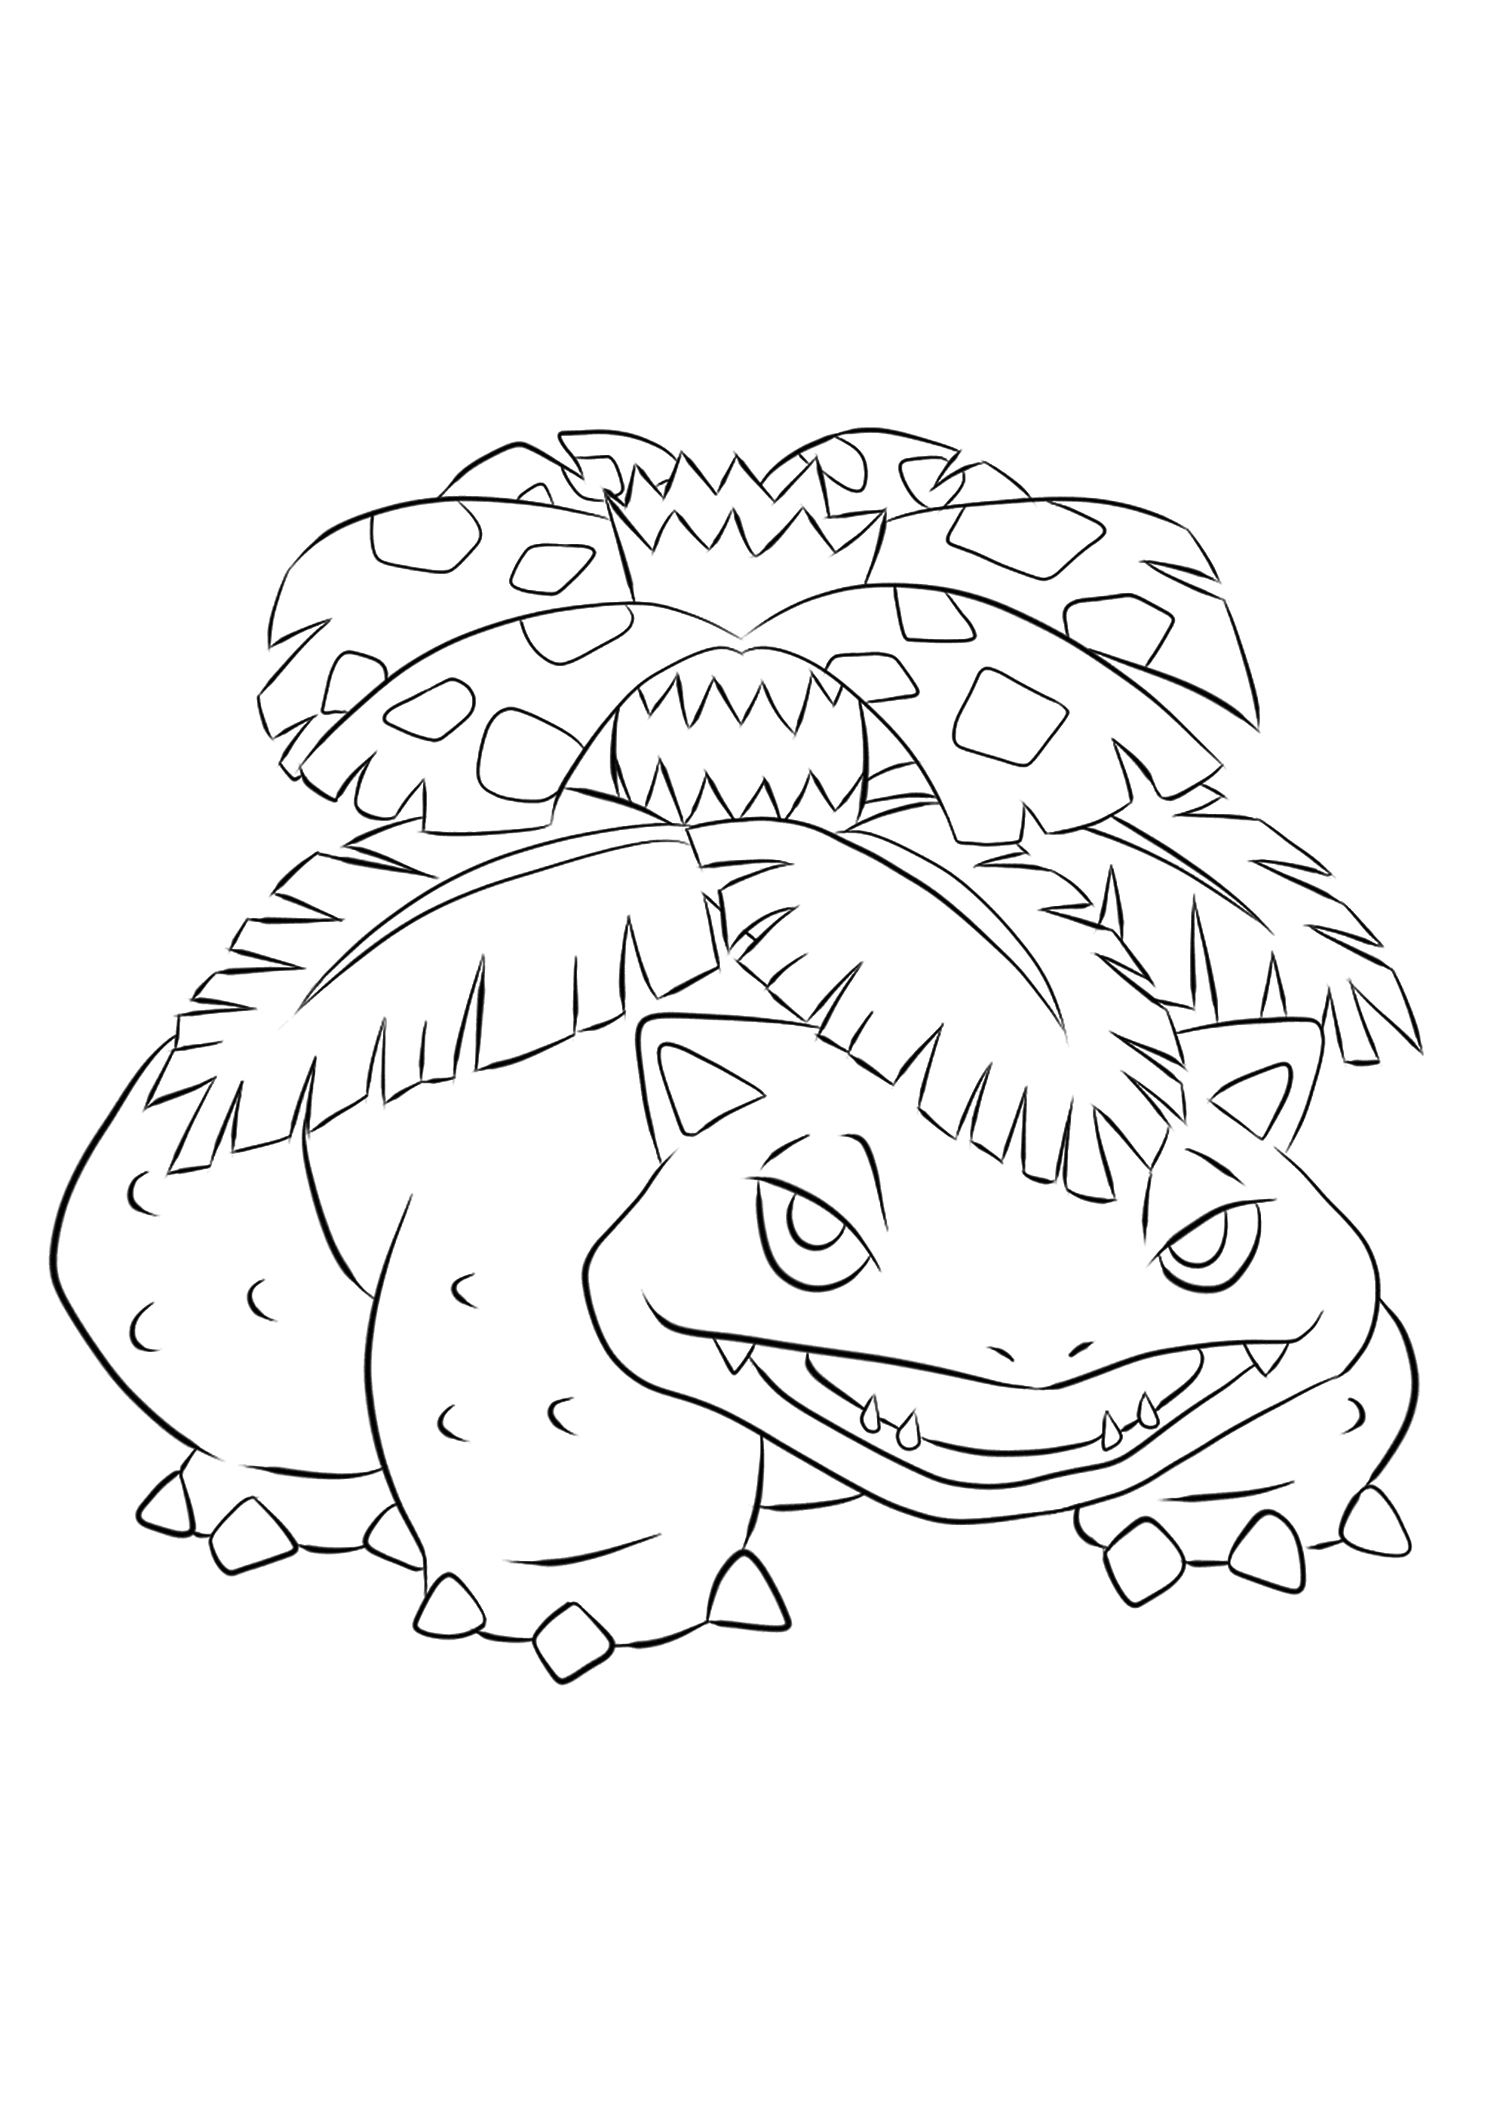 Pokemon Coloring Pages | 2121x1500